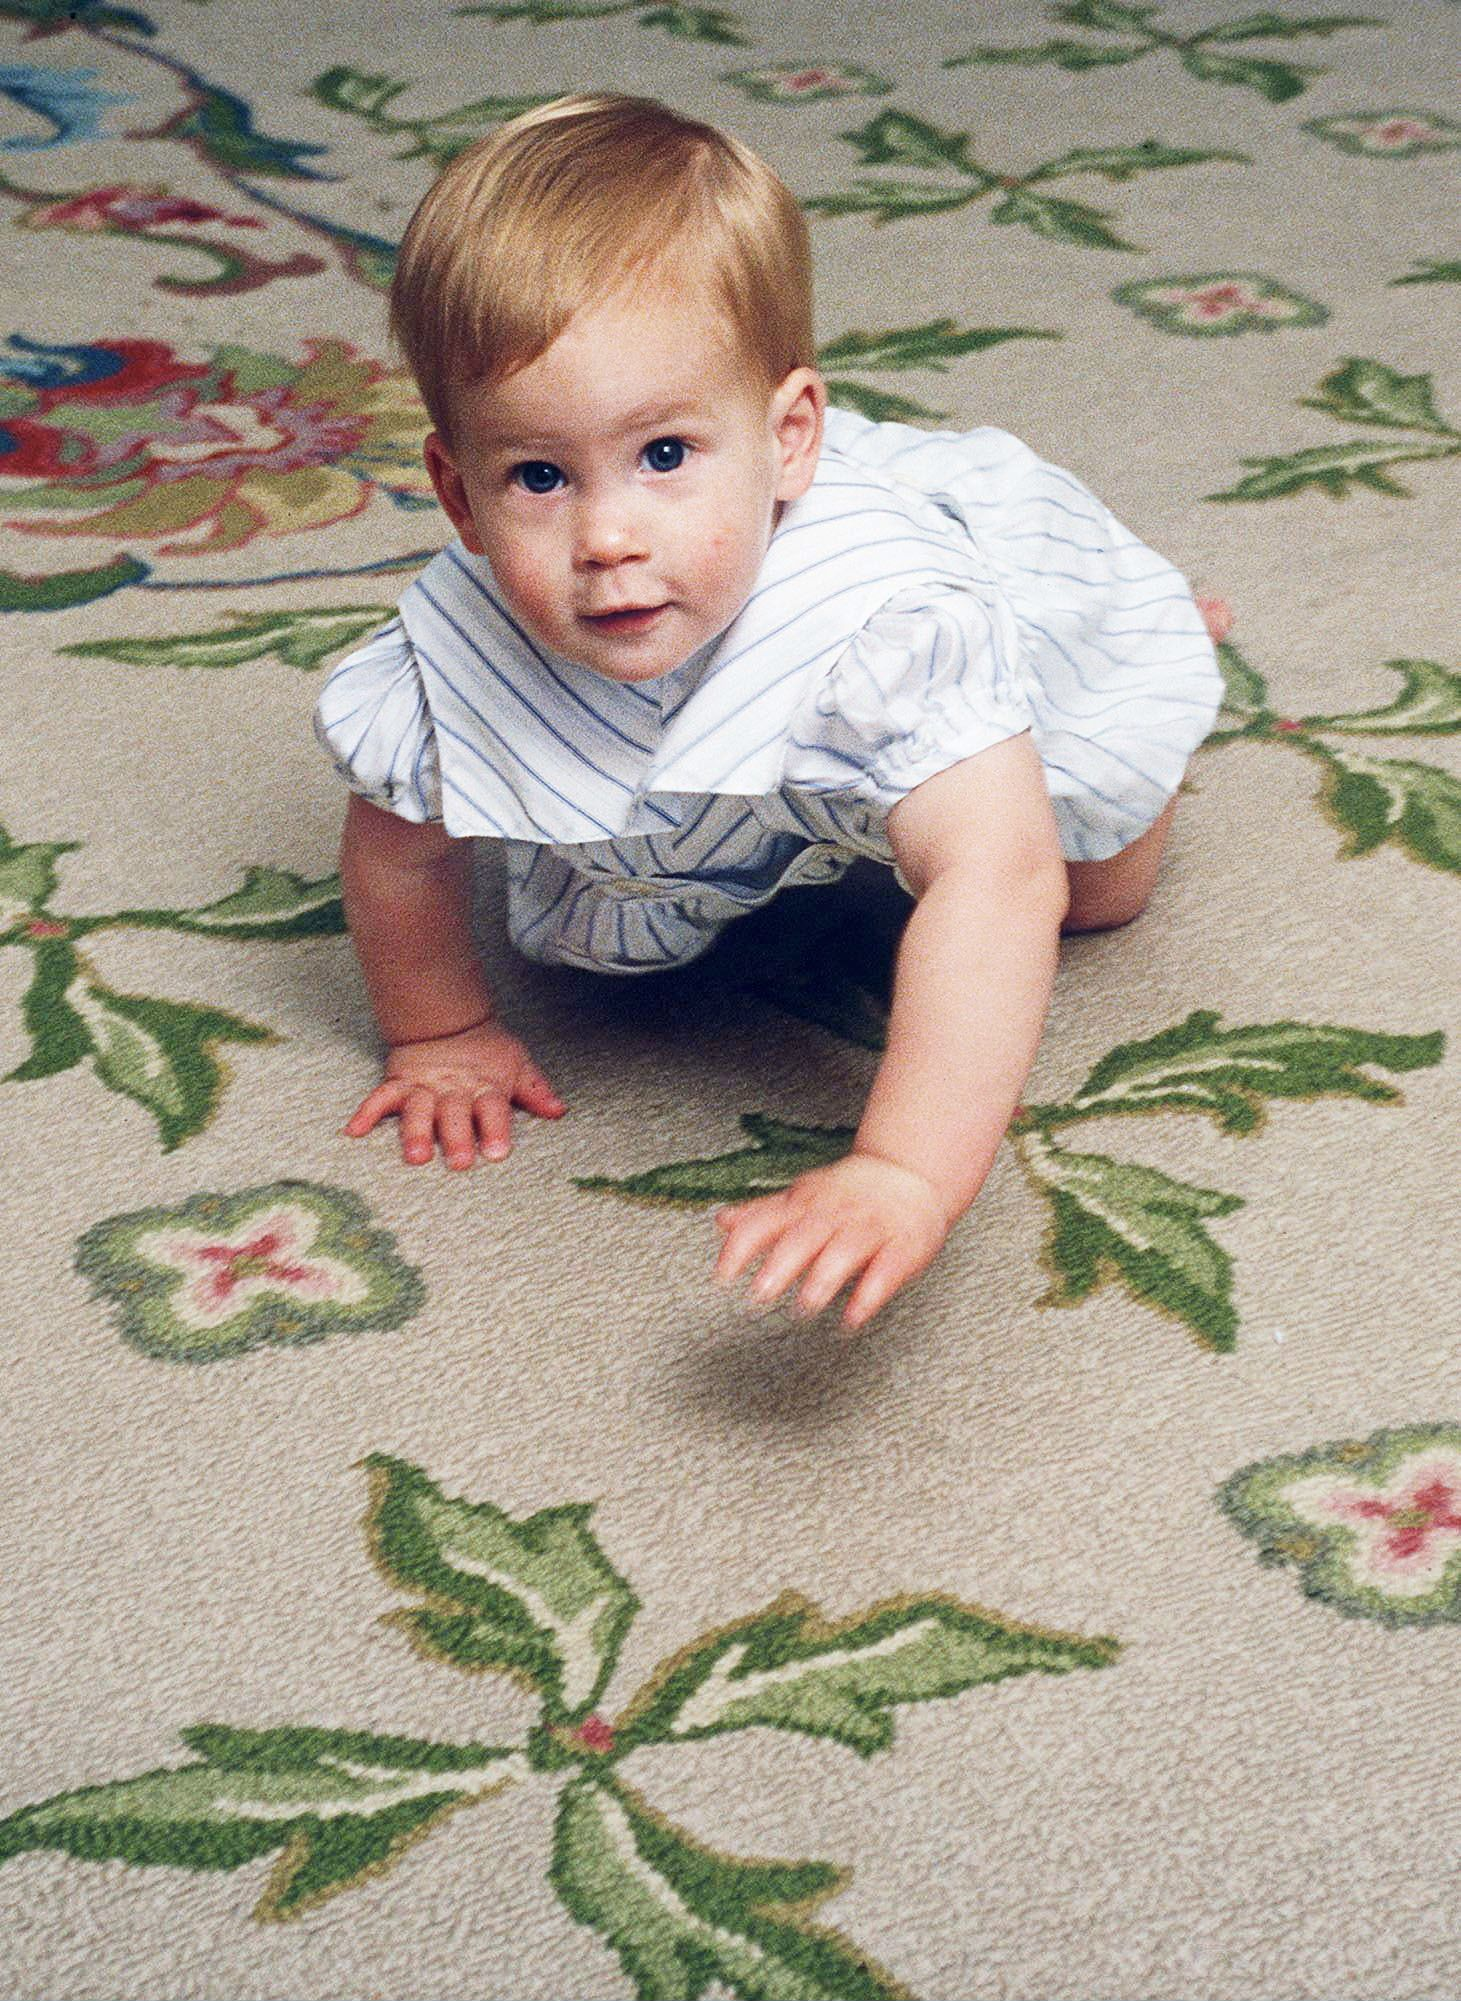 LONDON, UNITED KINGDOM - OCTOBER 04:  Prince Harry Learning To Crawl At Home In Kensington Palace.  (Photo by Tim Graham/Getty Images)